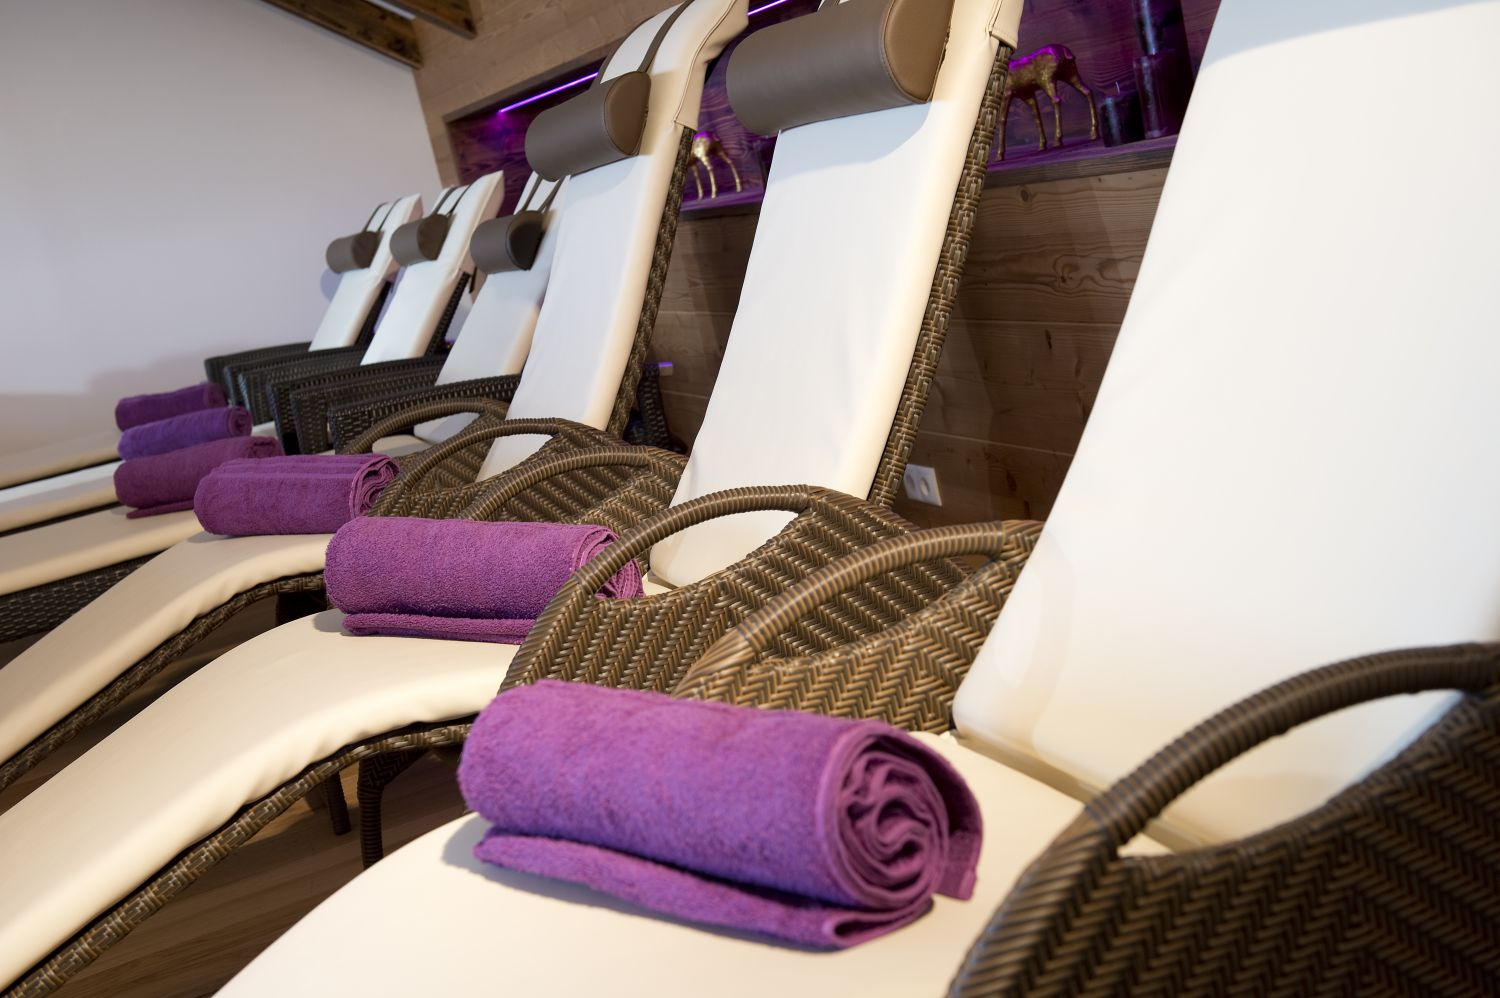 Wellness and Spa at the Hotel Gambswirt